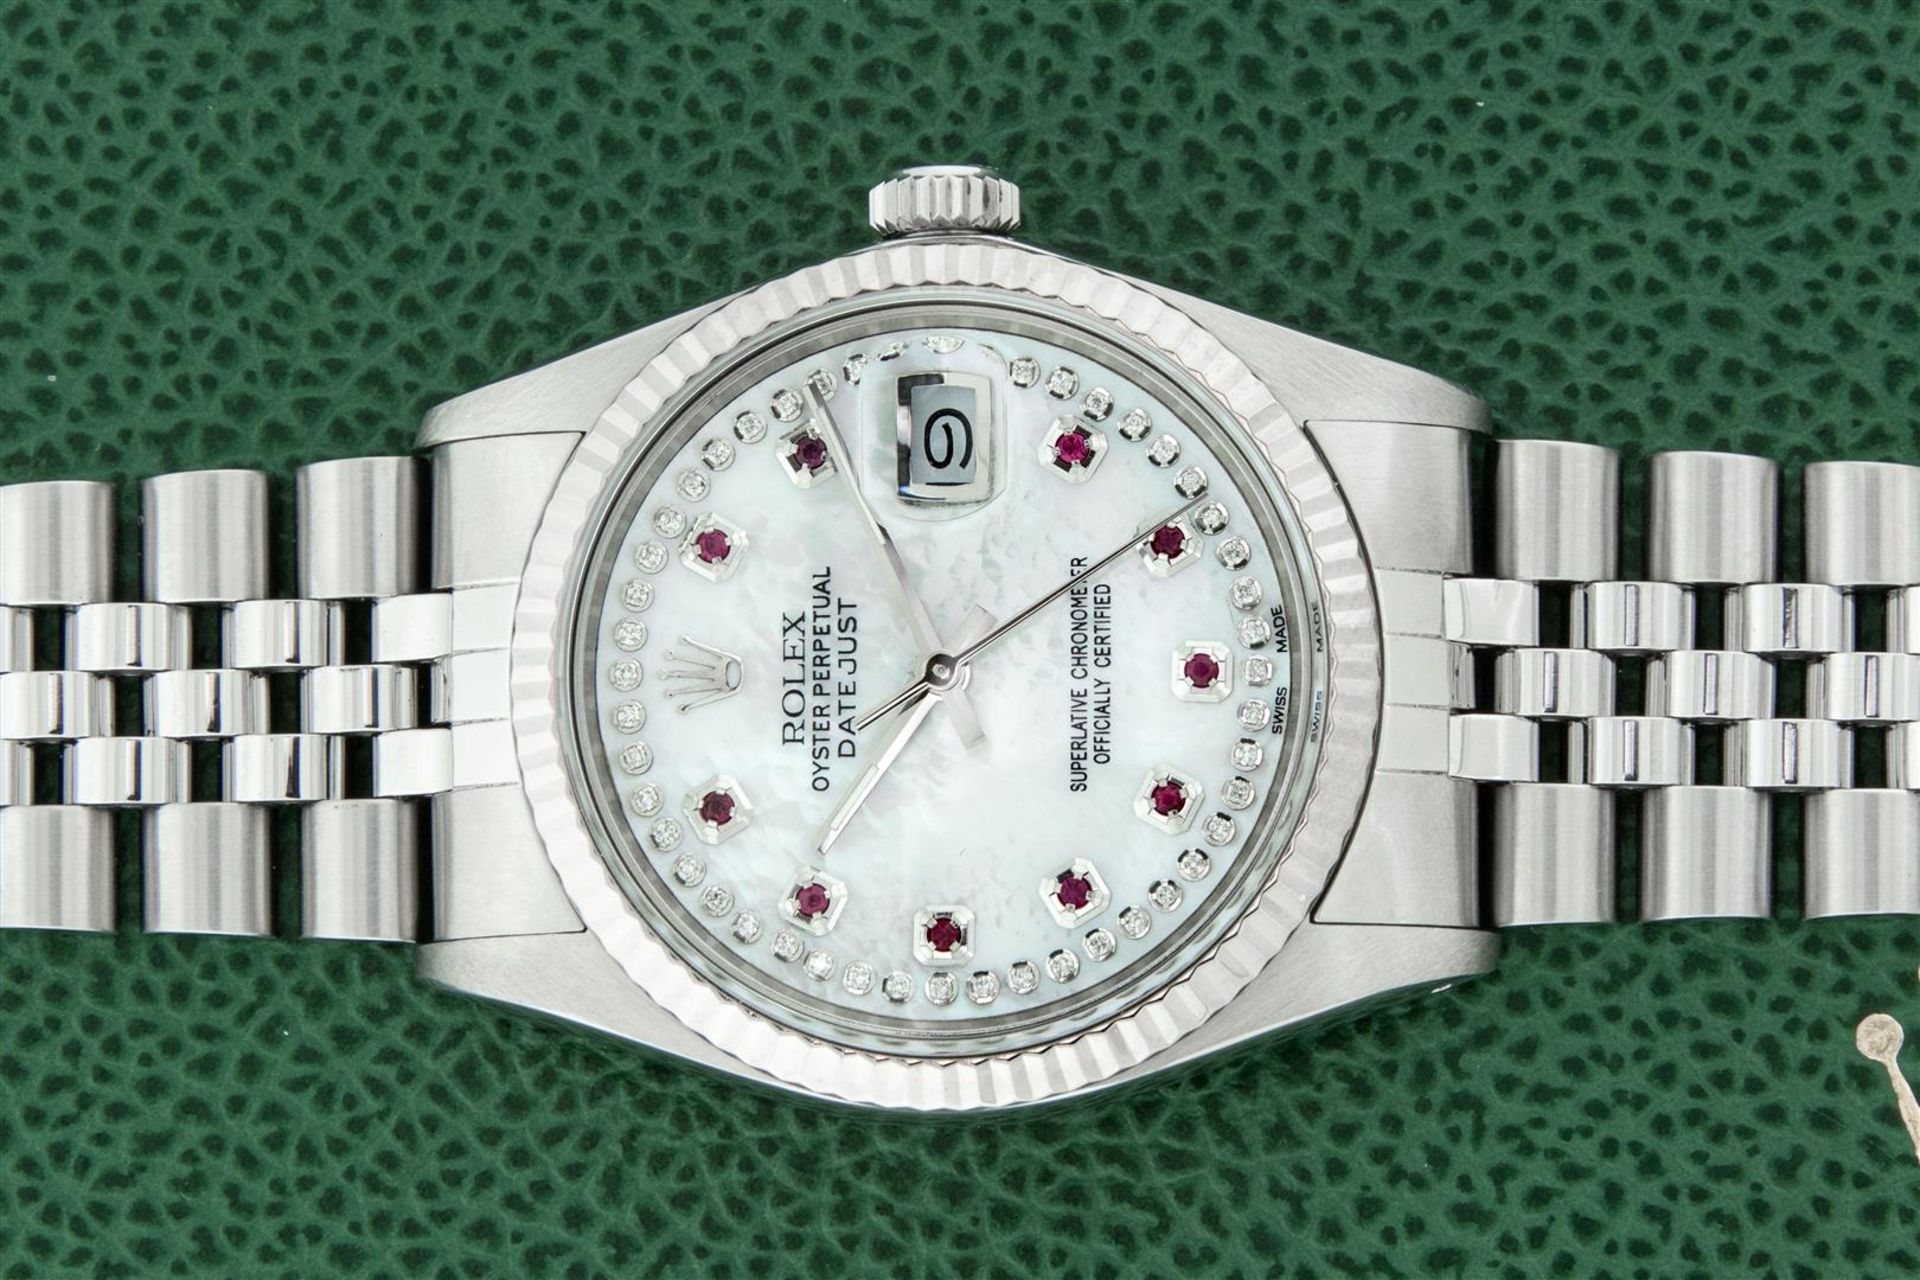 Rolex Mens Stainless Steel Mother Of Pearl Diamond & Ruby Datejust Wristwatch Wi - Image 2 of 8